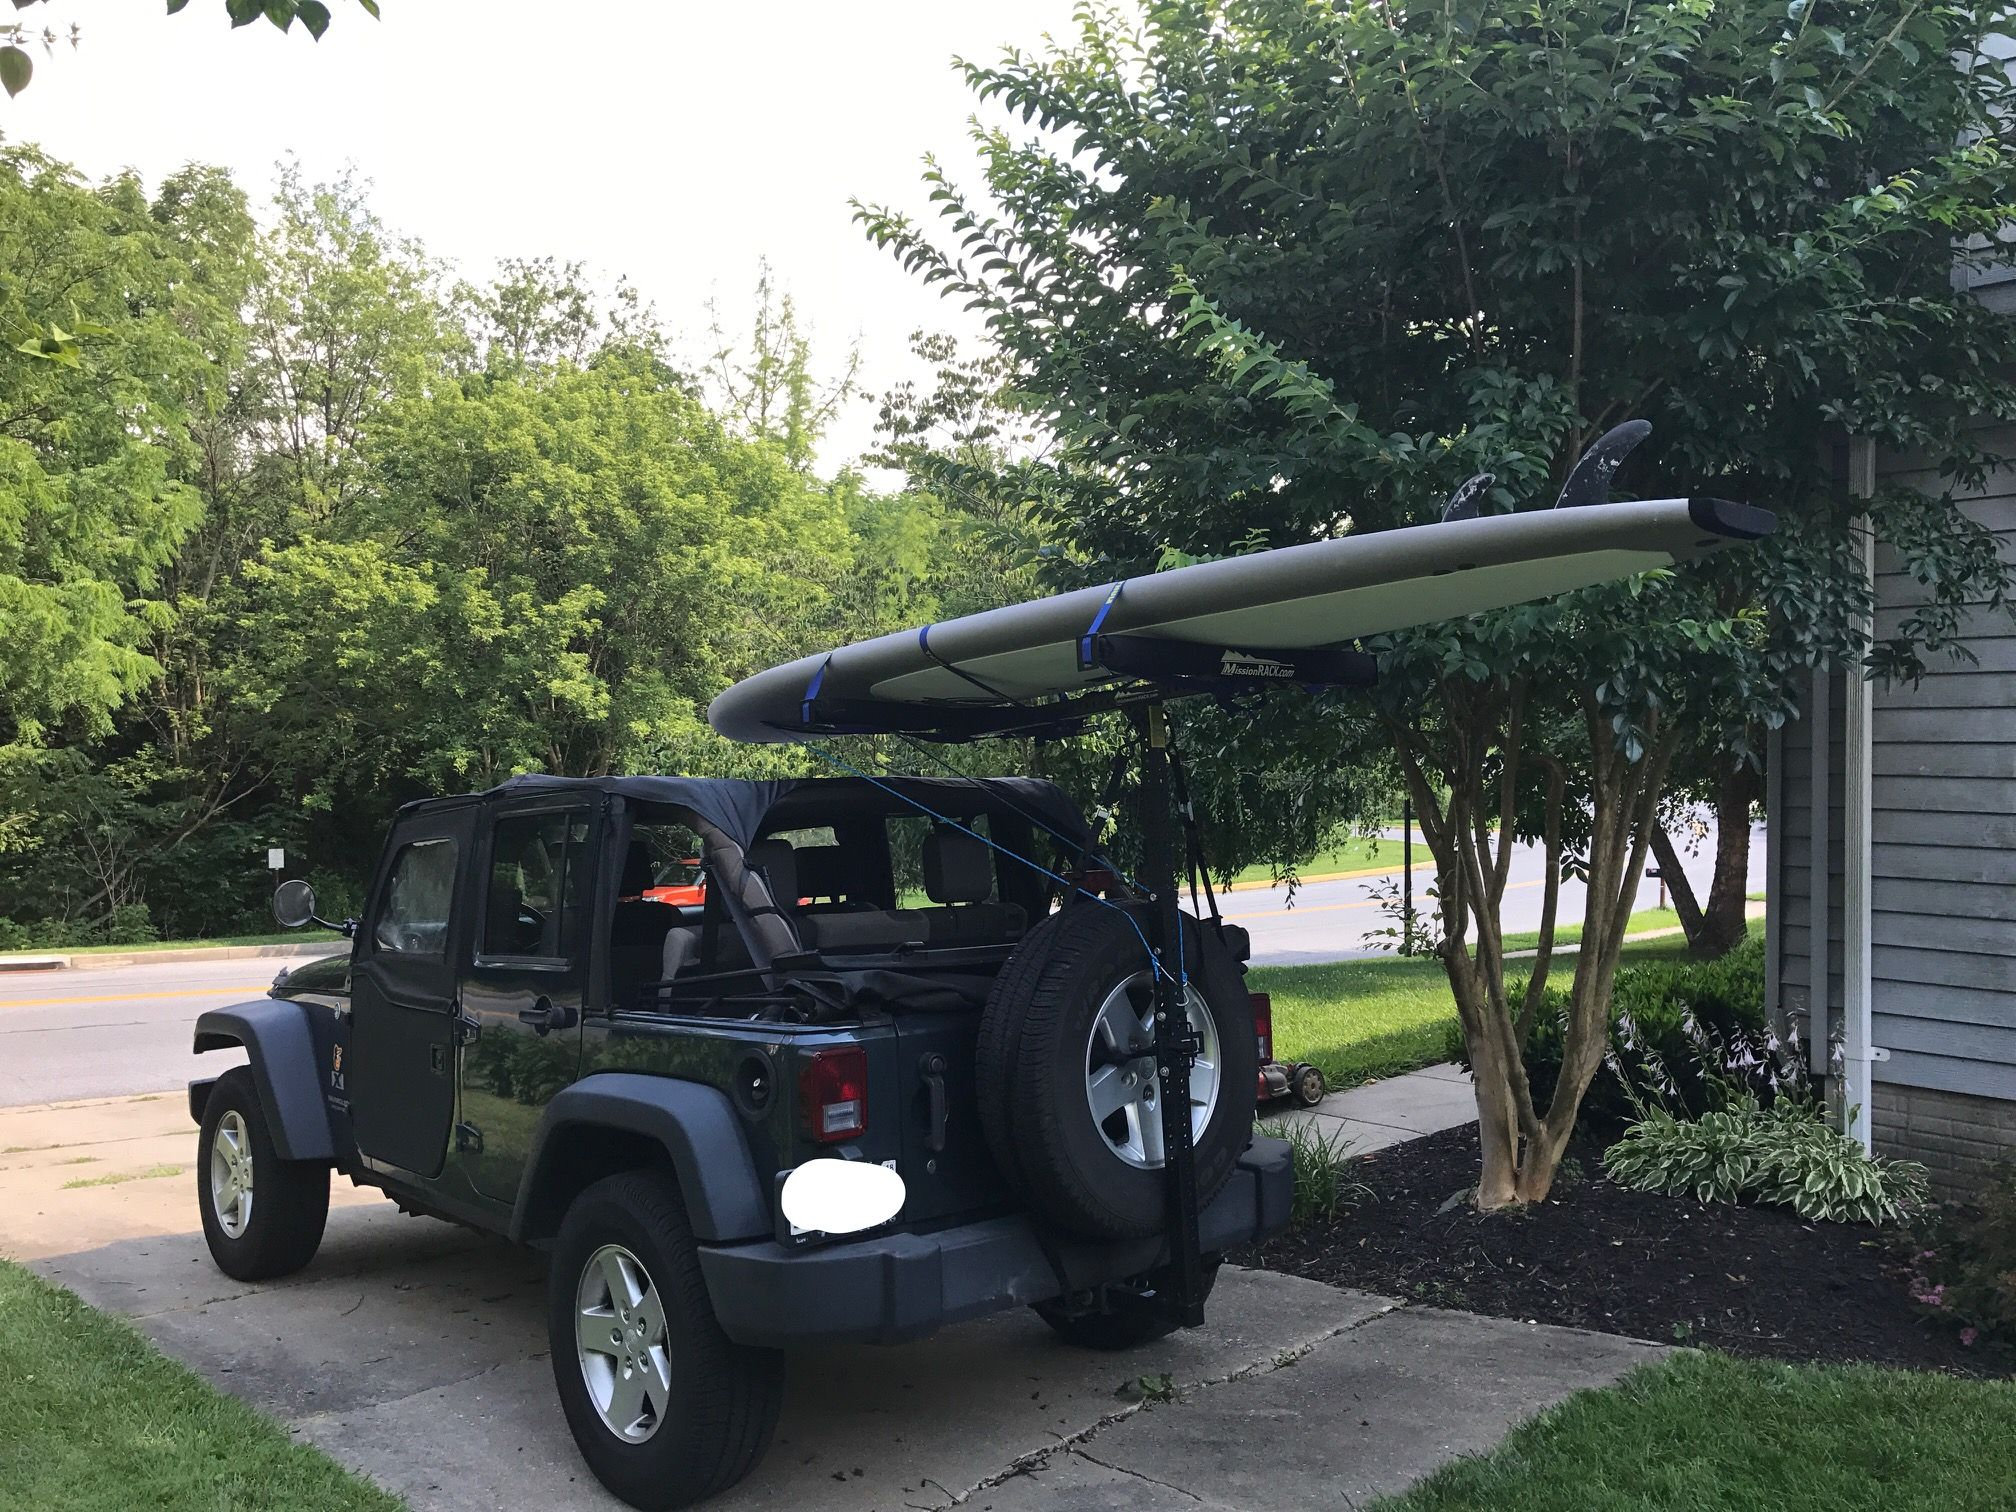 Jeep Hitchmount Rack Suitable For Kayaks And Paddle Boards Jeep